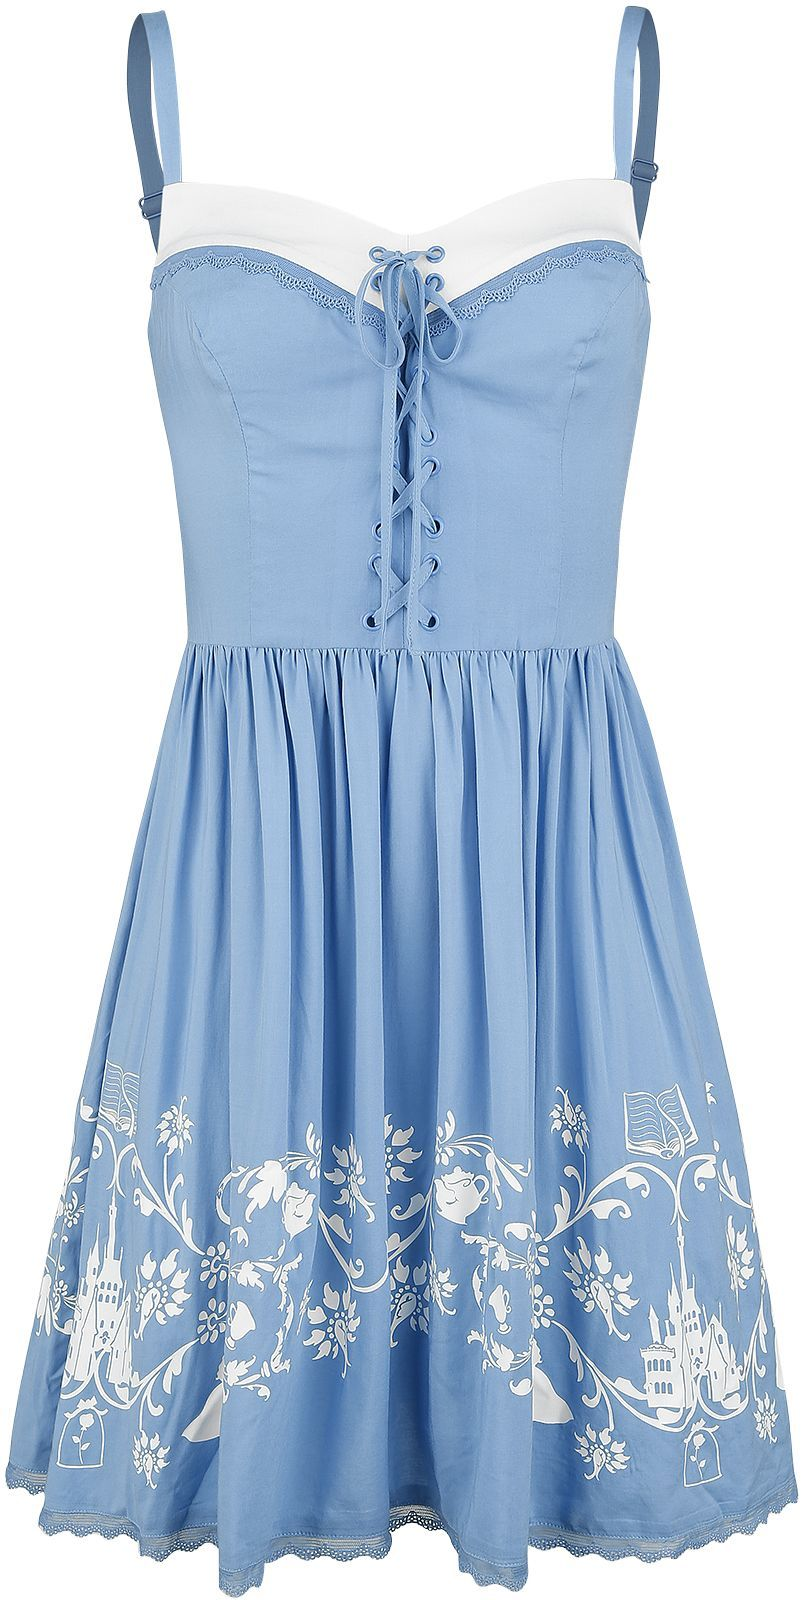 Beauty and the Beast Short dress Buy online now | Lolita / Sweet ...